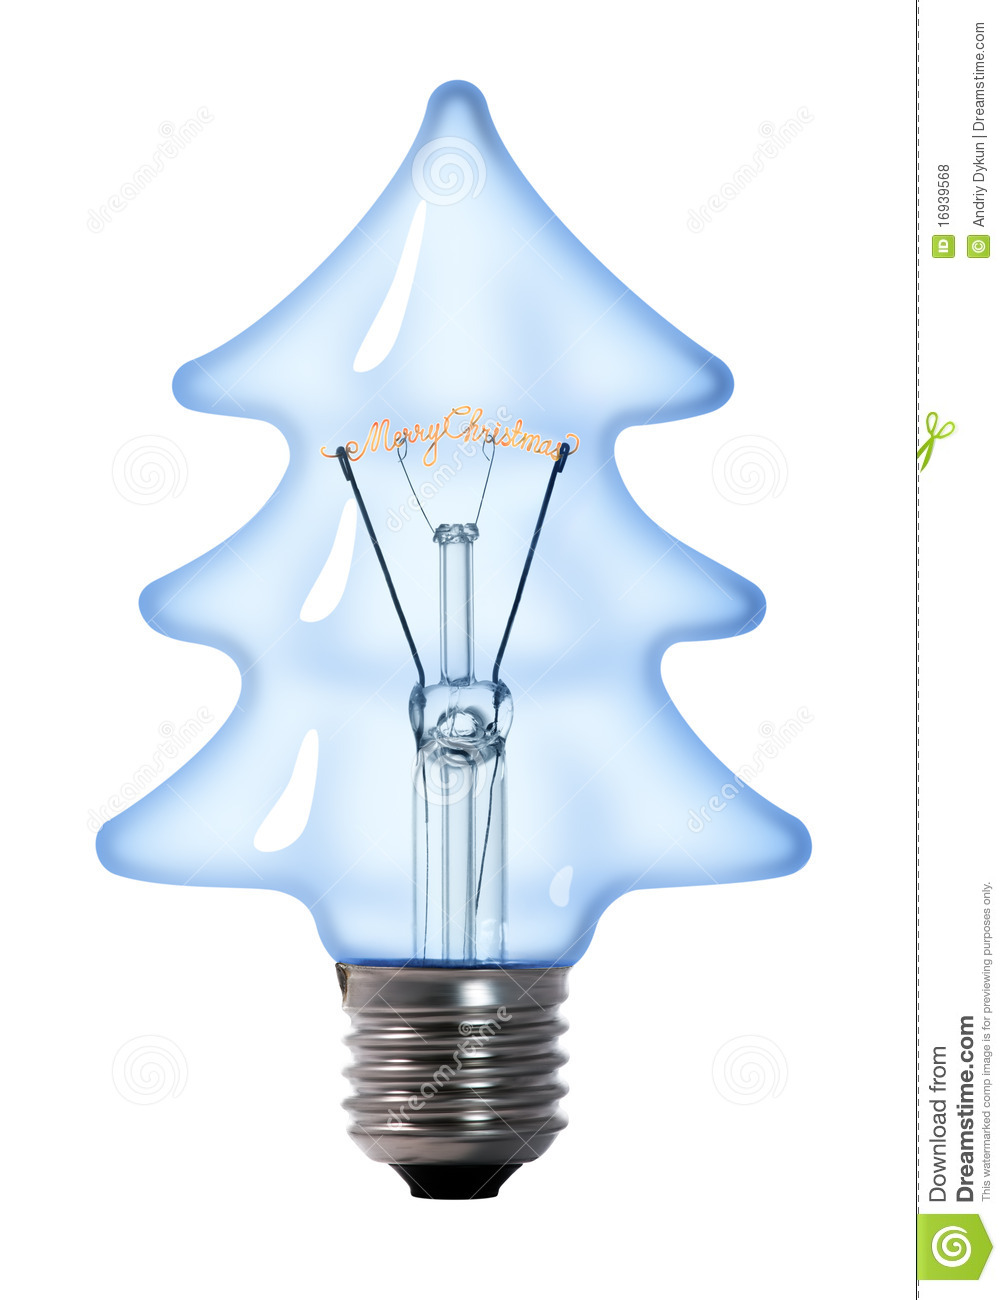 christmas tree light bulb royalty free stock photos image 16939568. Black Bedroom Furniture Sets. Home Design Ideas